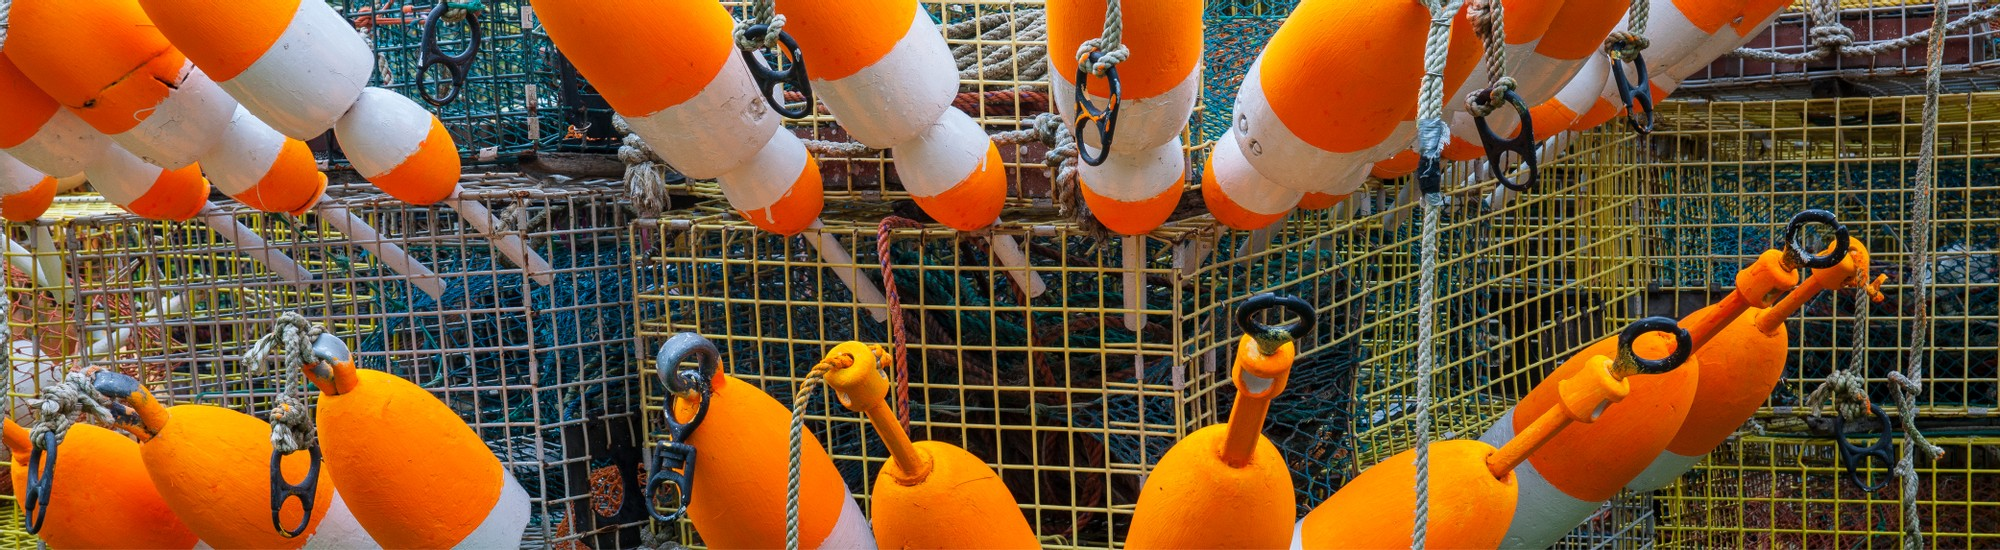 Lobster buoys and lobster traps